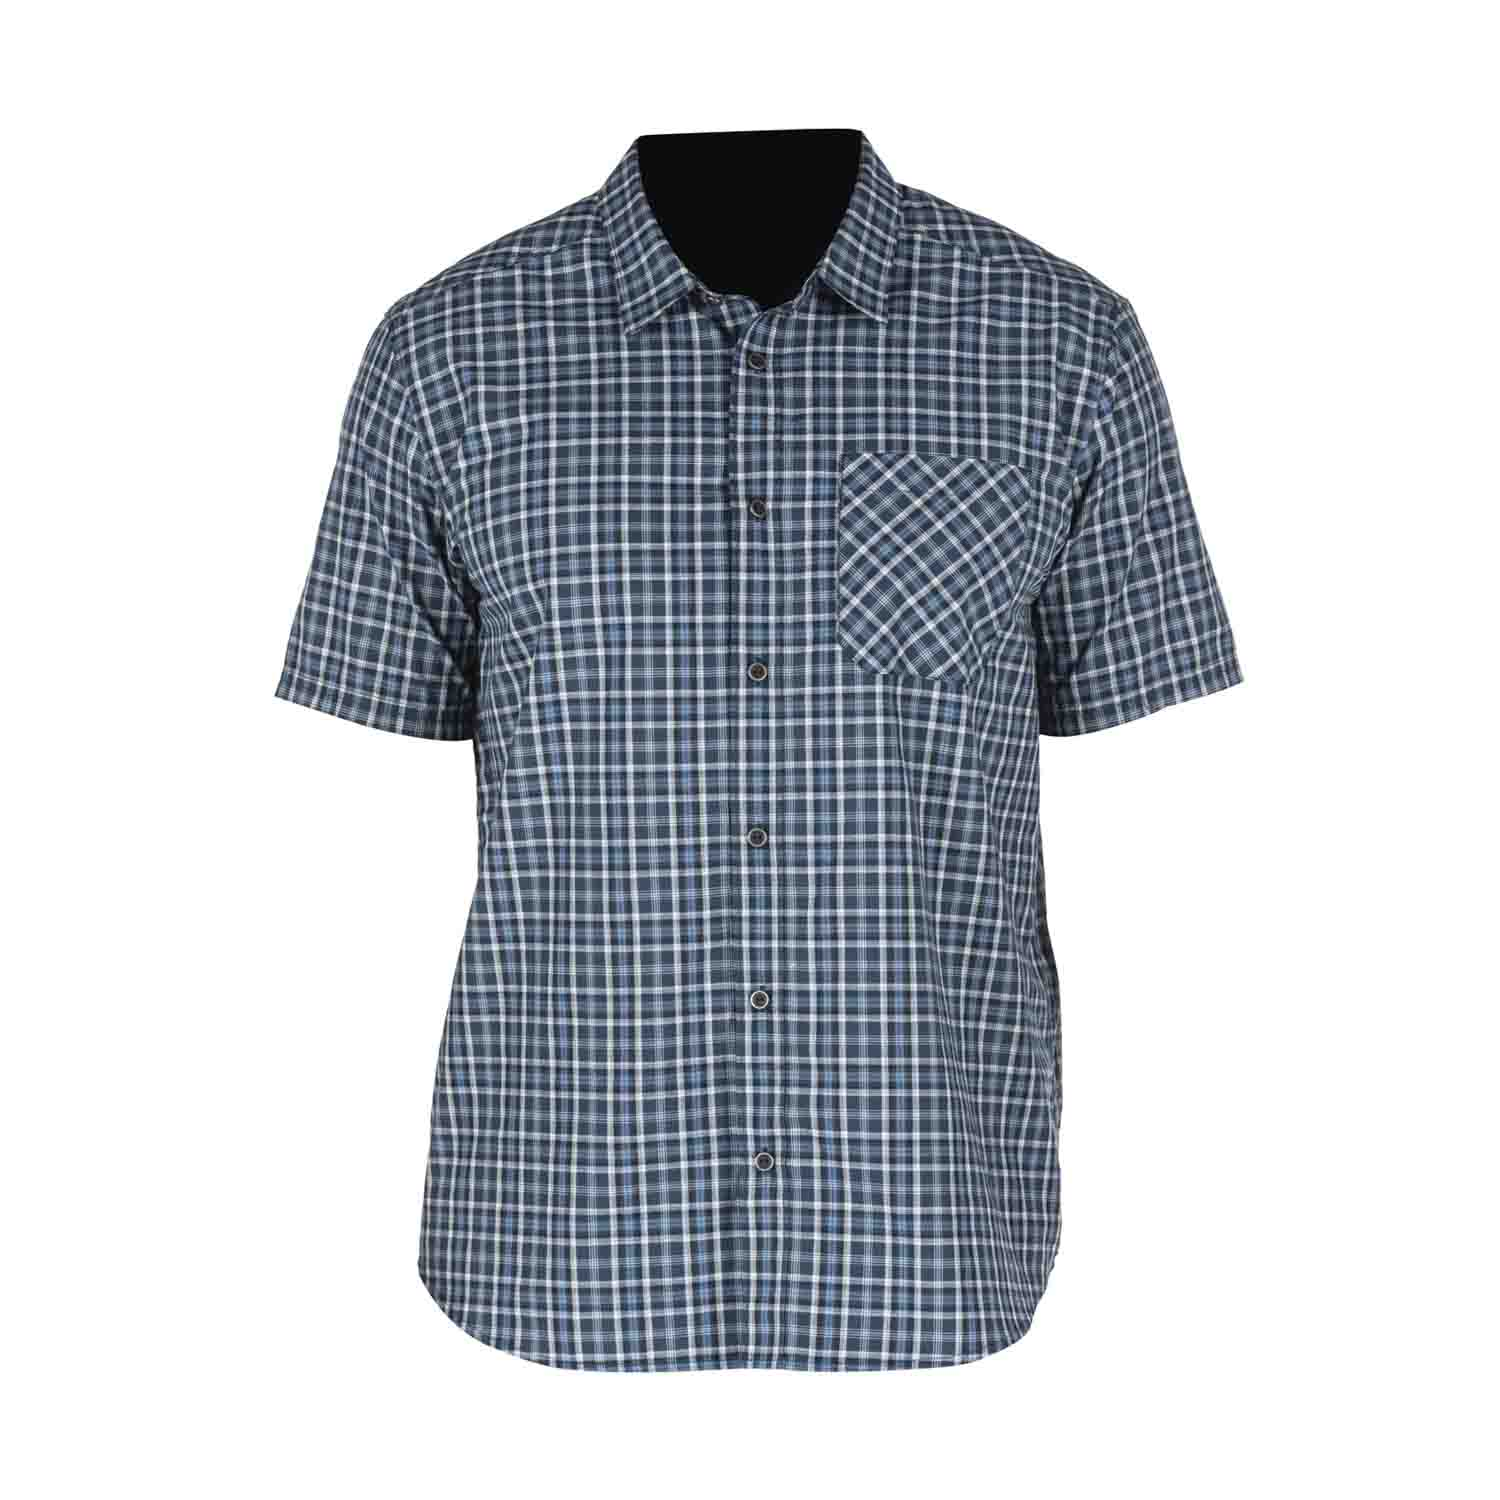 5.11 Tactical Carson Short Sleeve CCW Shirt